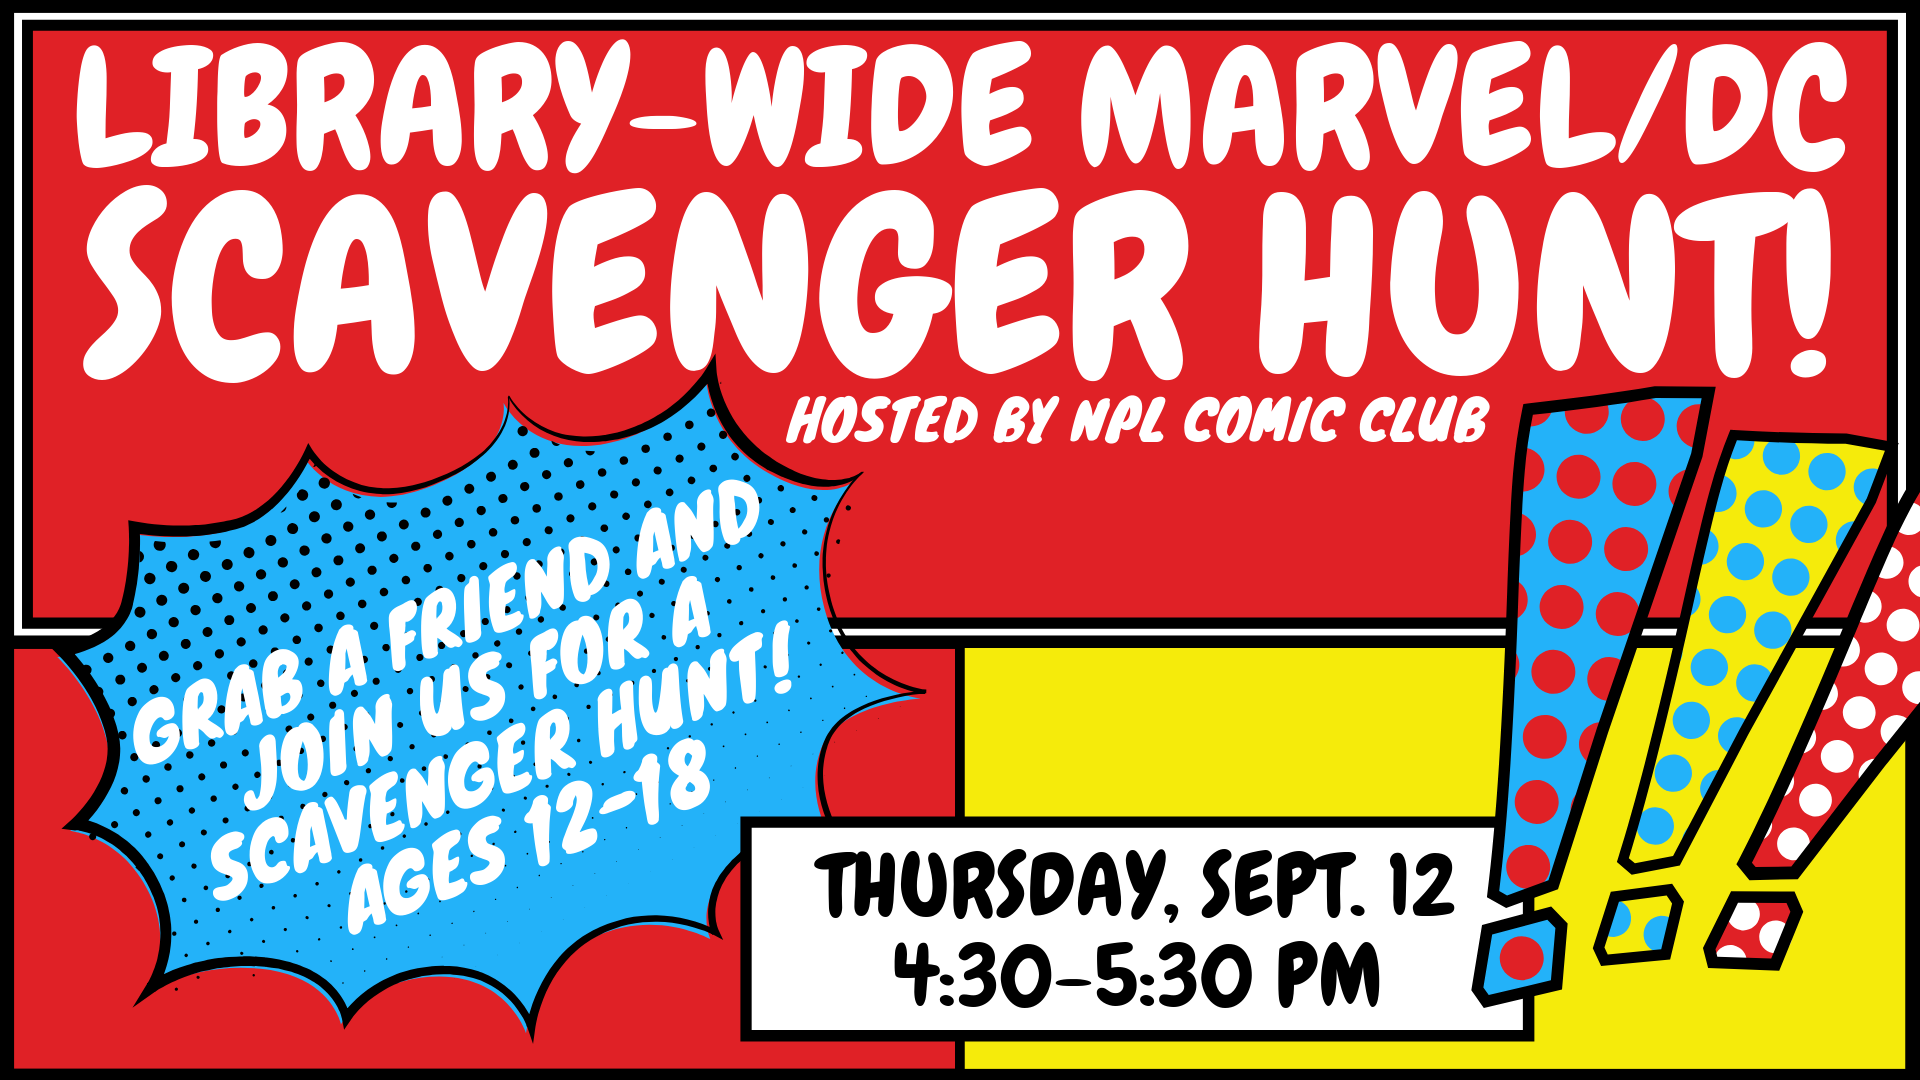 Library Wide Marvel/DC Scavenger Hunt! Hosted by NPL Comic Club